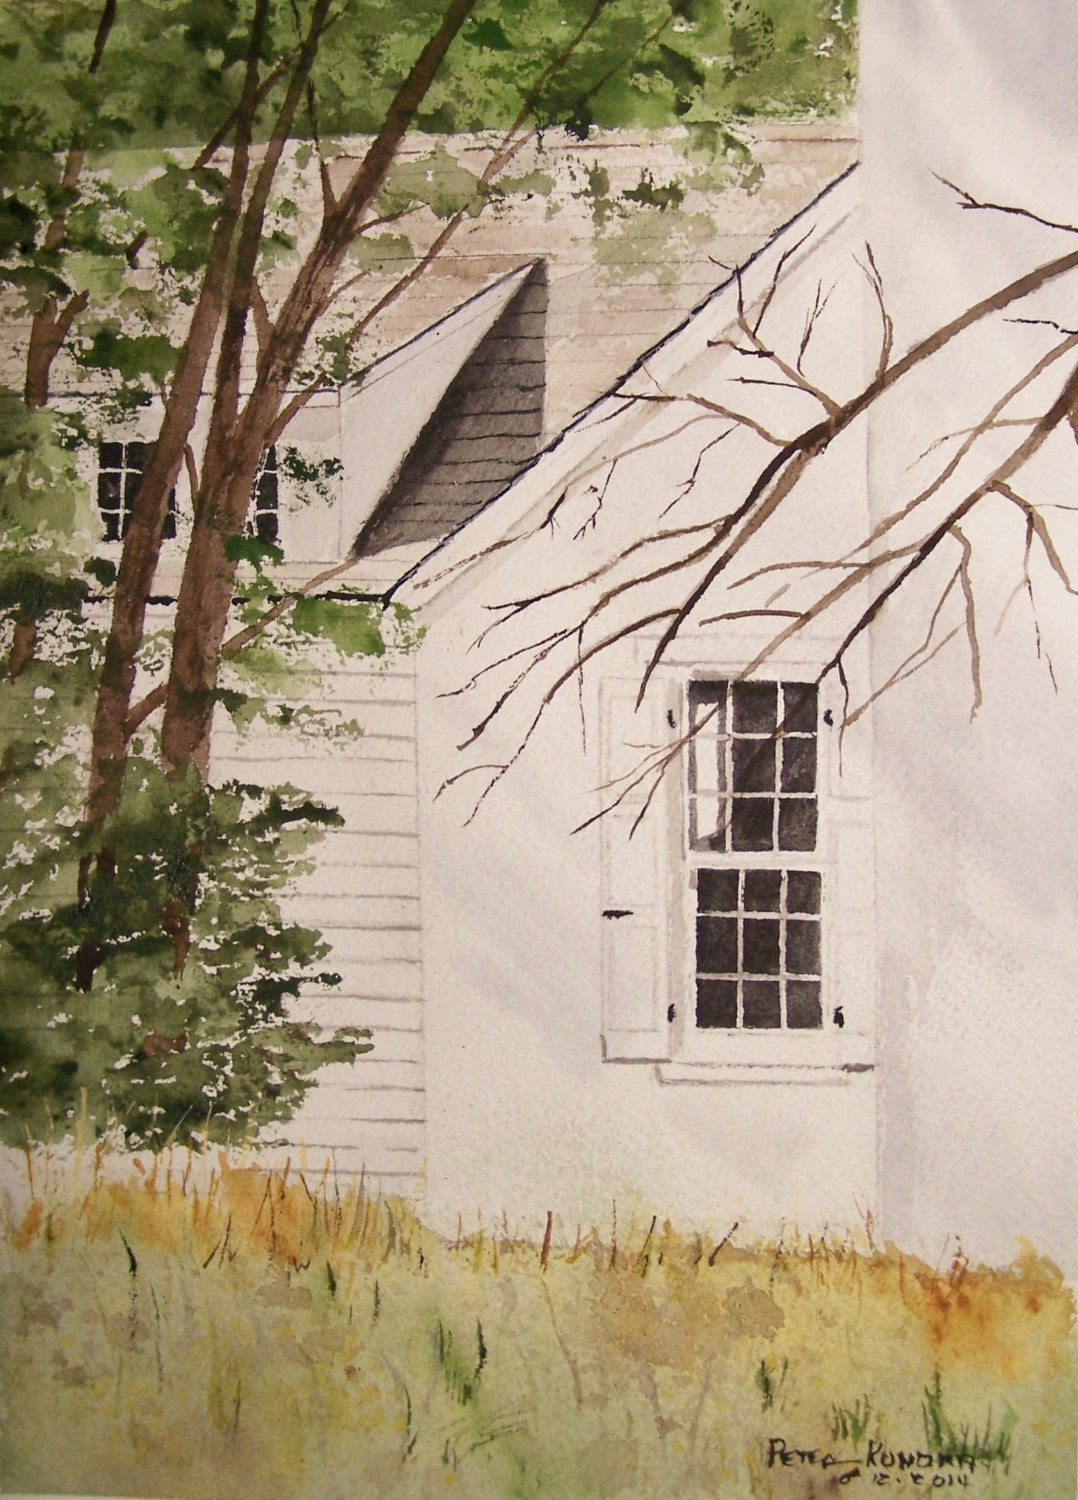 watercolor paintingpainting of Andrew wyeth studioTHE